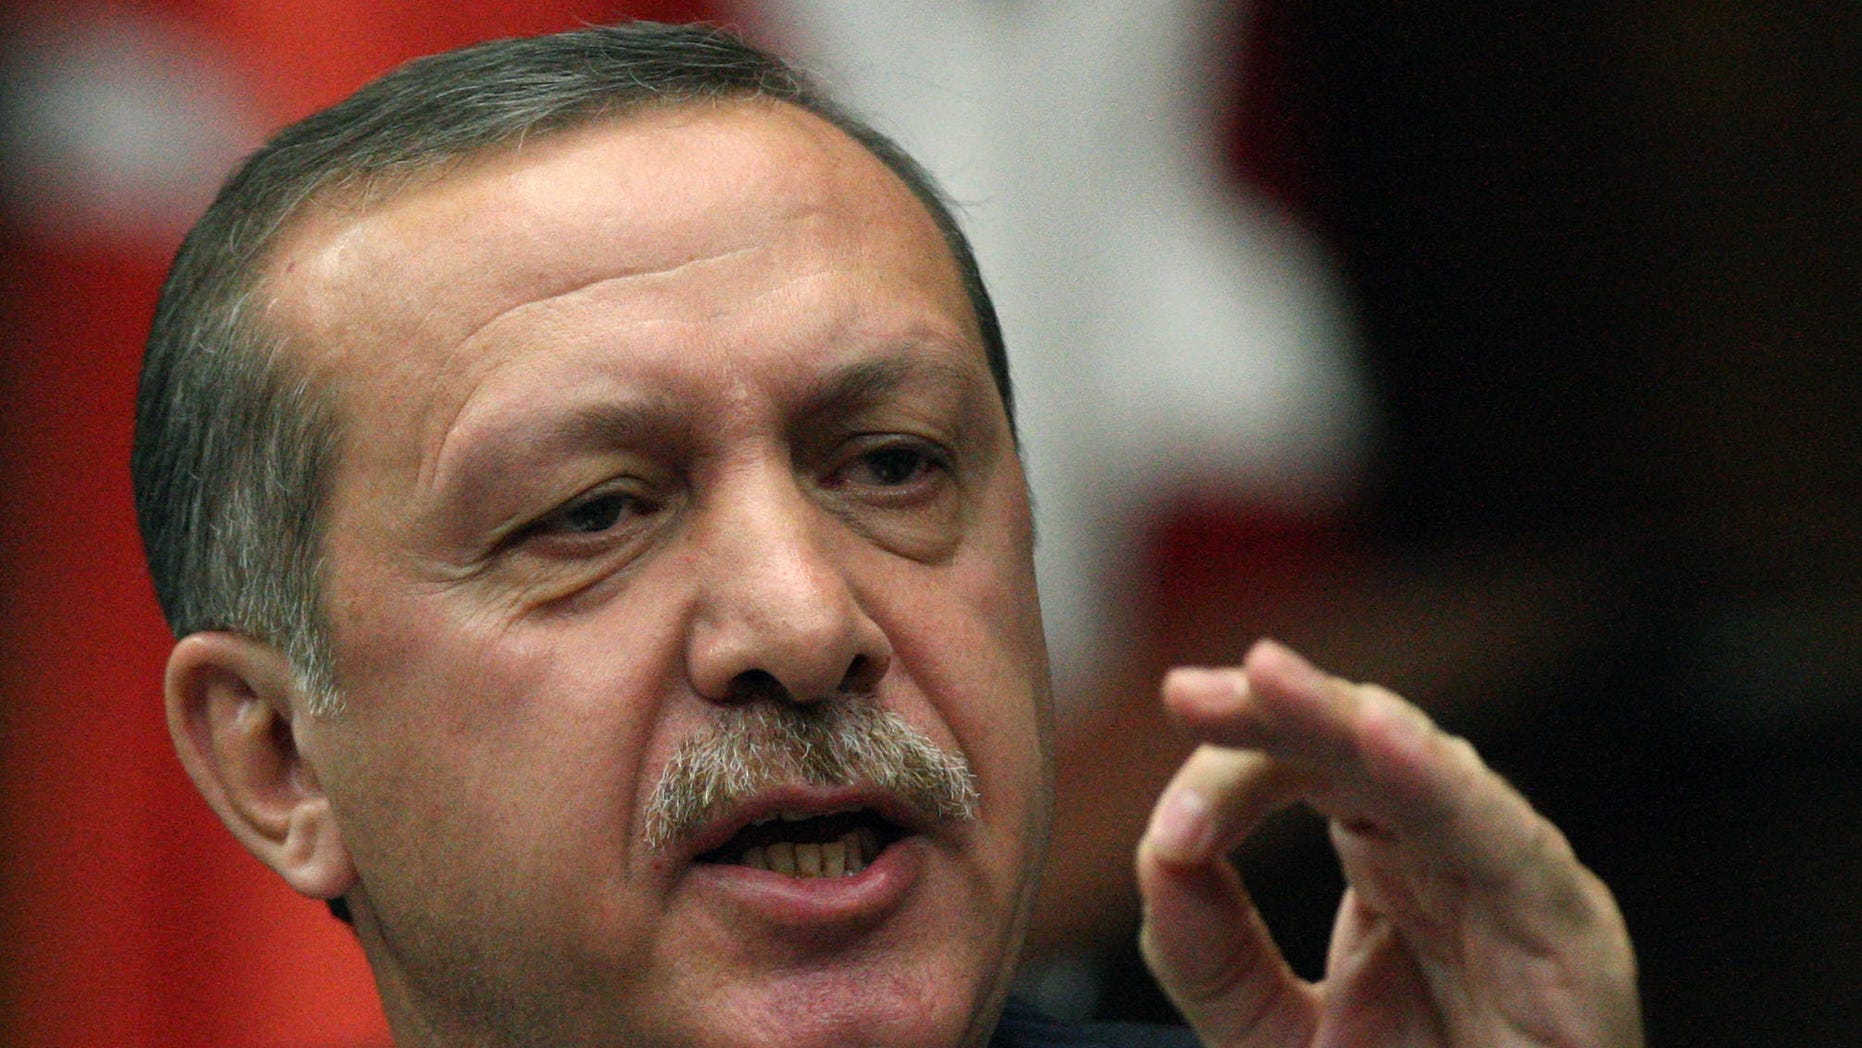 Turkish President Recep Tayyip Erdogan finally agreed to allow US planes to launch from Turkey, but his own strikes on Kurds have complicated matters. (AP Photo/Burhan Ozbilici)